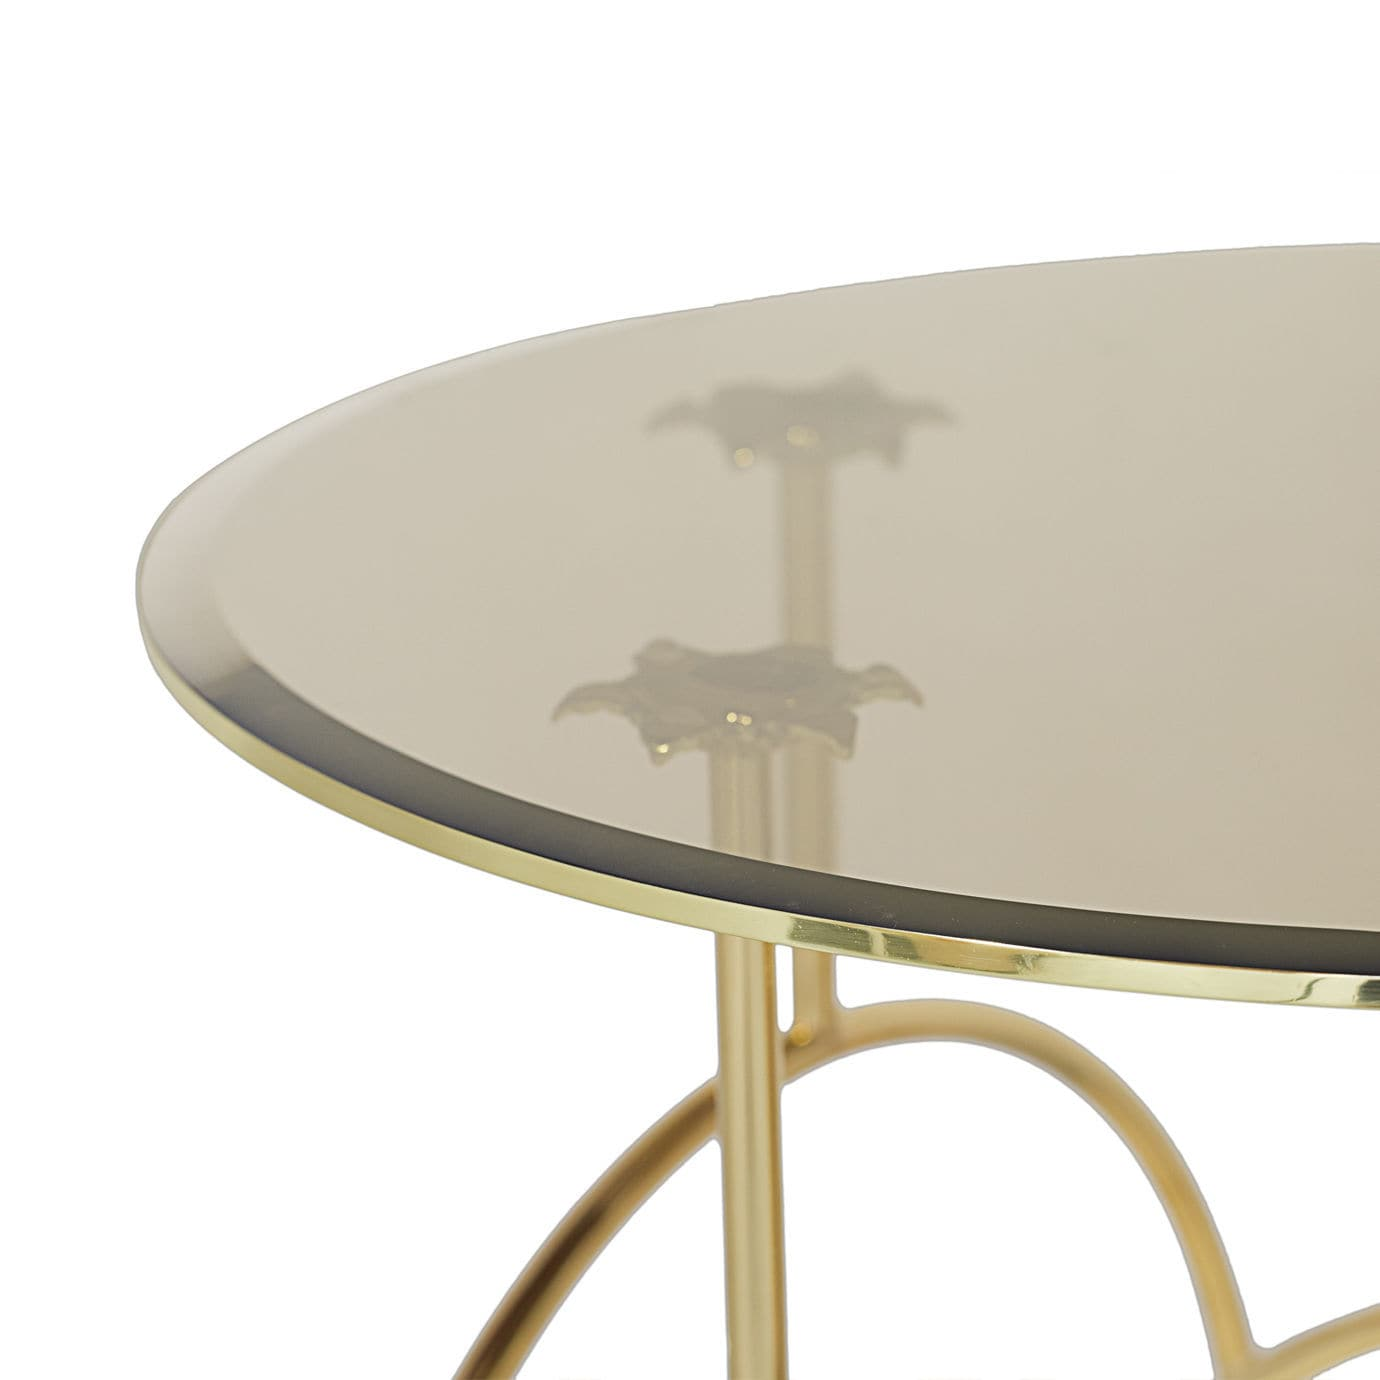 Table Appoint Verre Table D Appoint Design Original En Laiton Poli En Verre Ronde